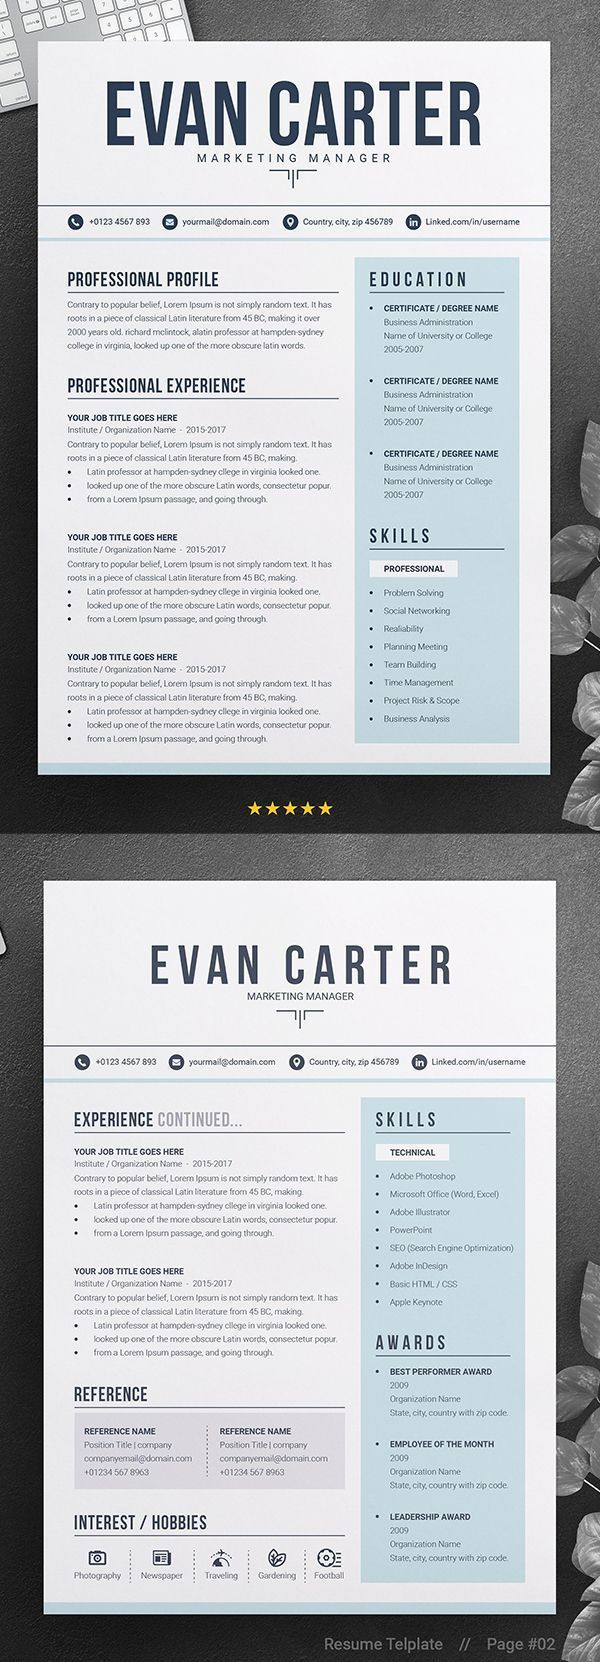 Attractive Resume Templates Free Download Google Docs Best Resume Examples